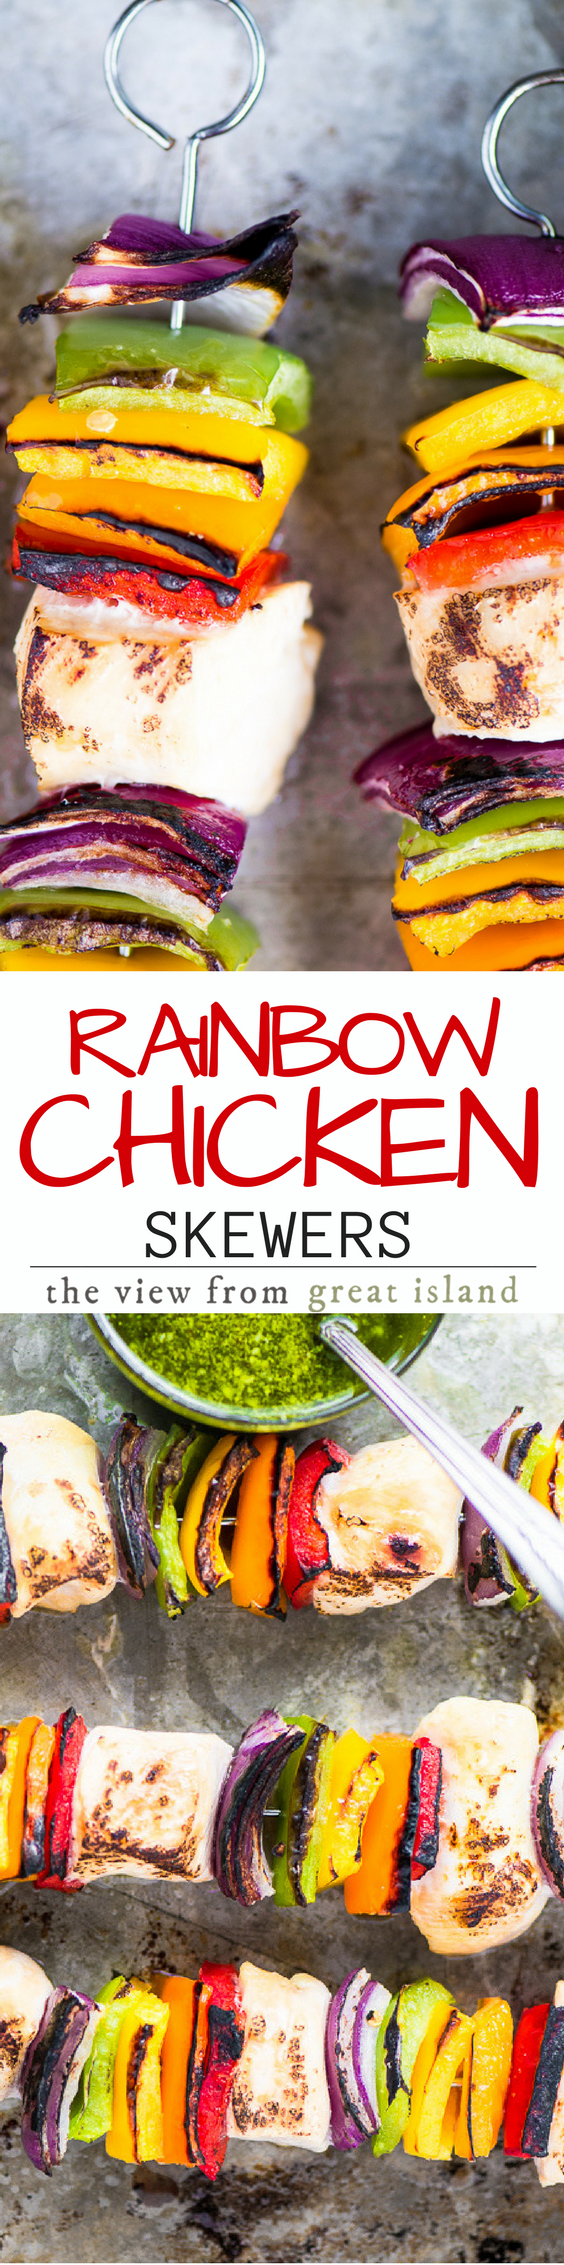 Rainbow Chicken Skewers with Spicy Pesto Sauce ~ my skewers are the essence of effortless outdoor eating but I'll show you how to get that just-off-the-grill taste right in the oven so you don't have to miss out if the weather doesn't cooperate, or you don't have a grill. | gluten free | Paleo | Whole 30 | Grilling |